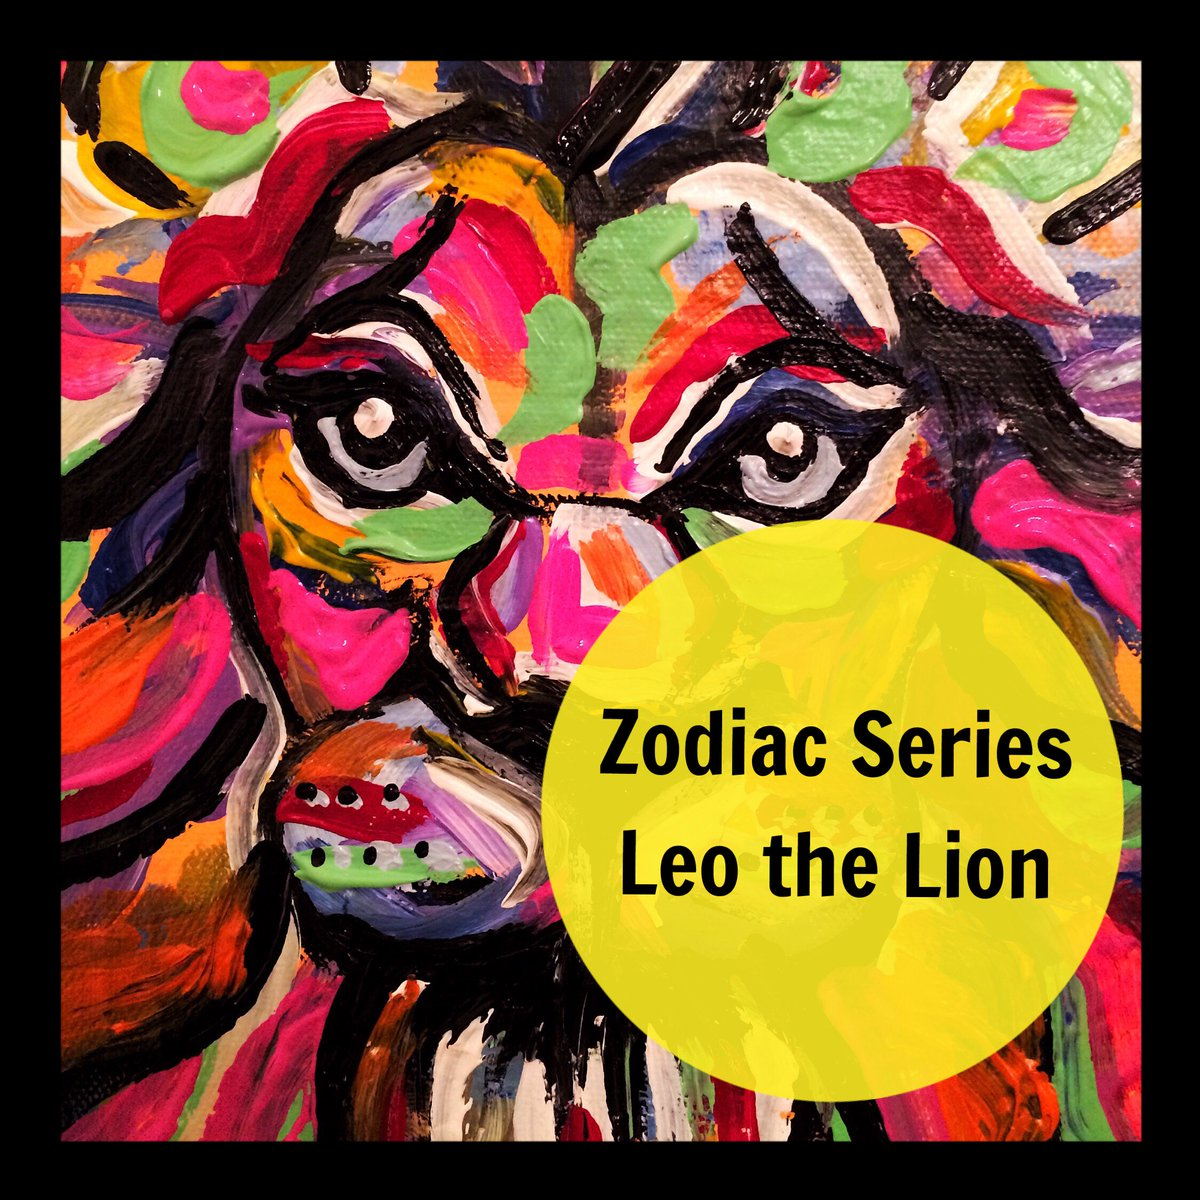 Zodiac Series: Leo the Lion painting class this week 8/22 in our #Dupont Studio. Register @  http:// ow.ly/nlzd30eyEDk  &nbsp;  <br>http://pic.twitter.com/voHYufshJA